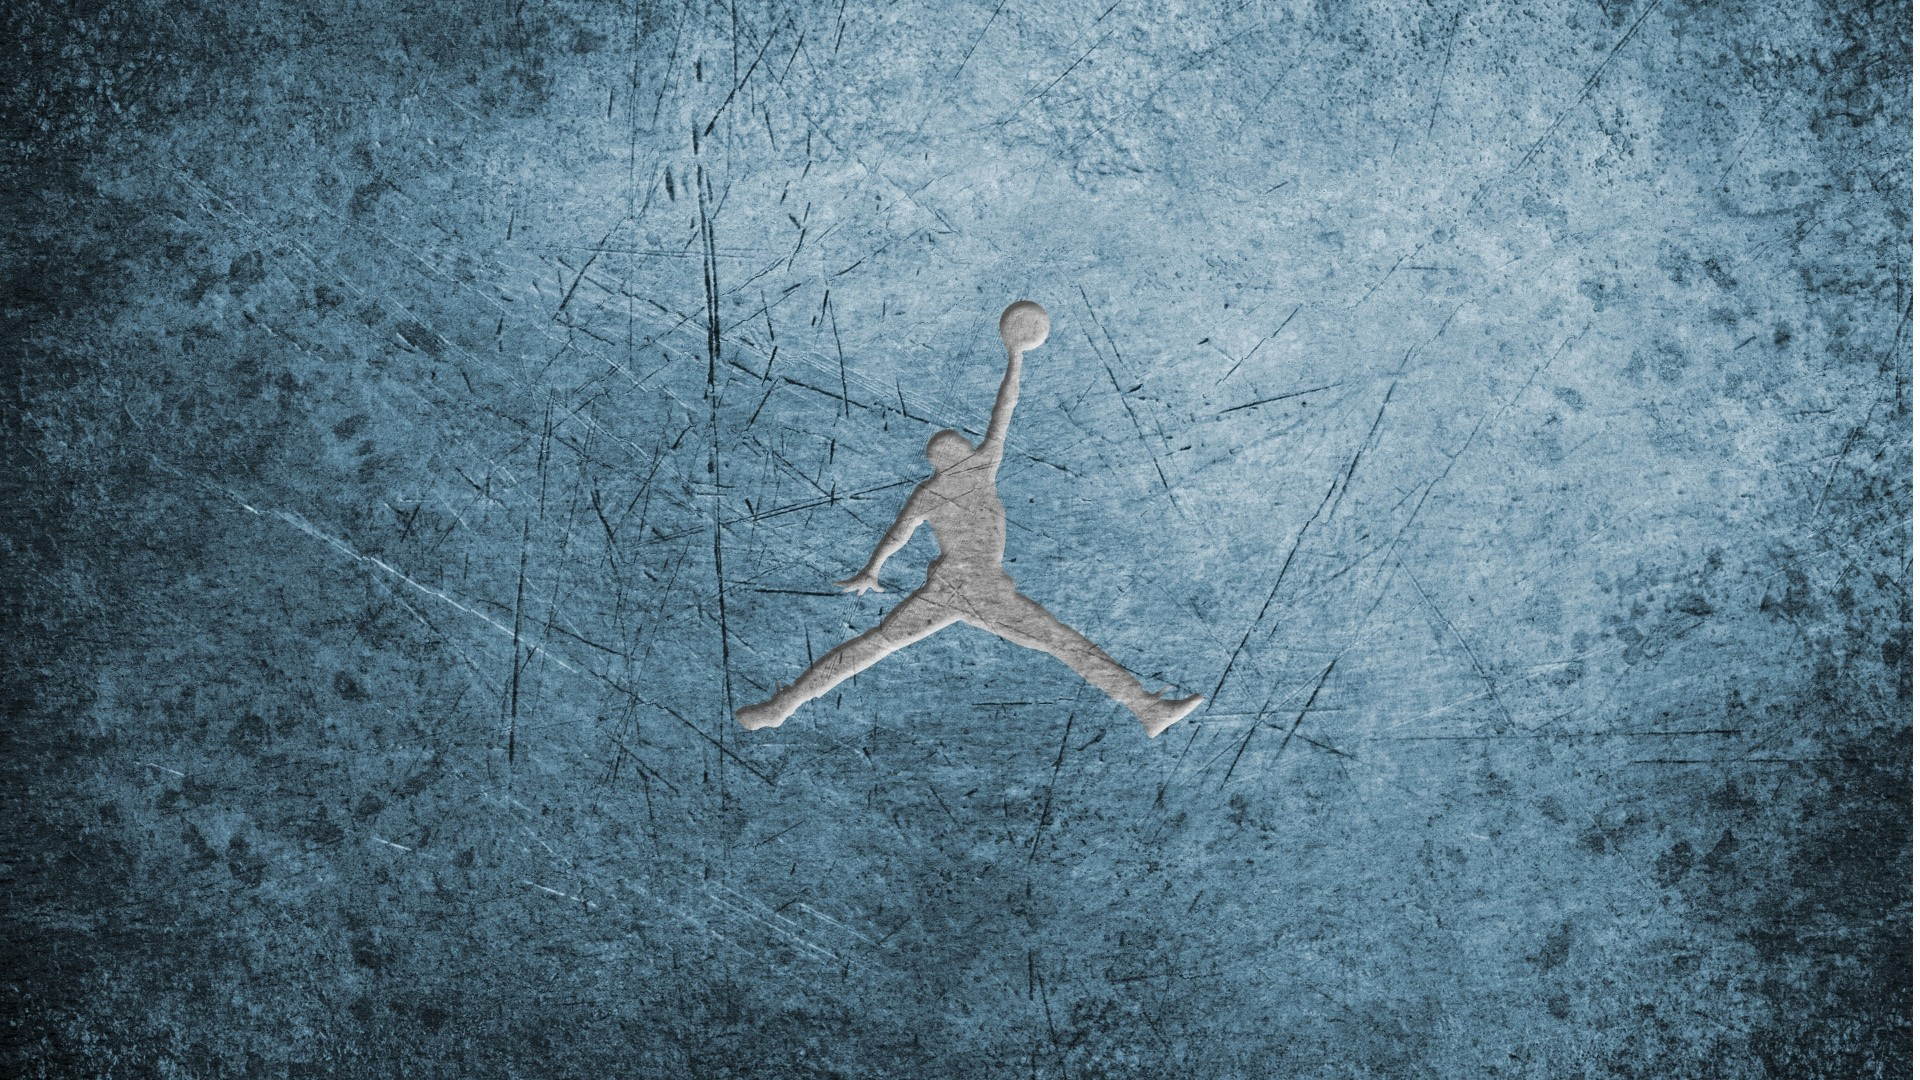 How To Make Space 34 Hd Air Jordan Logo Wallpapers For Free Download